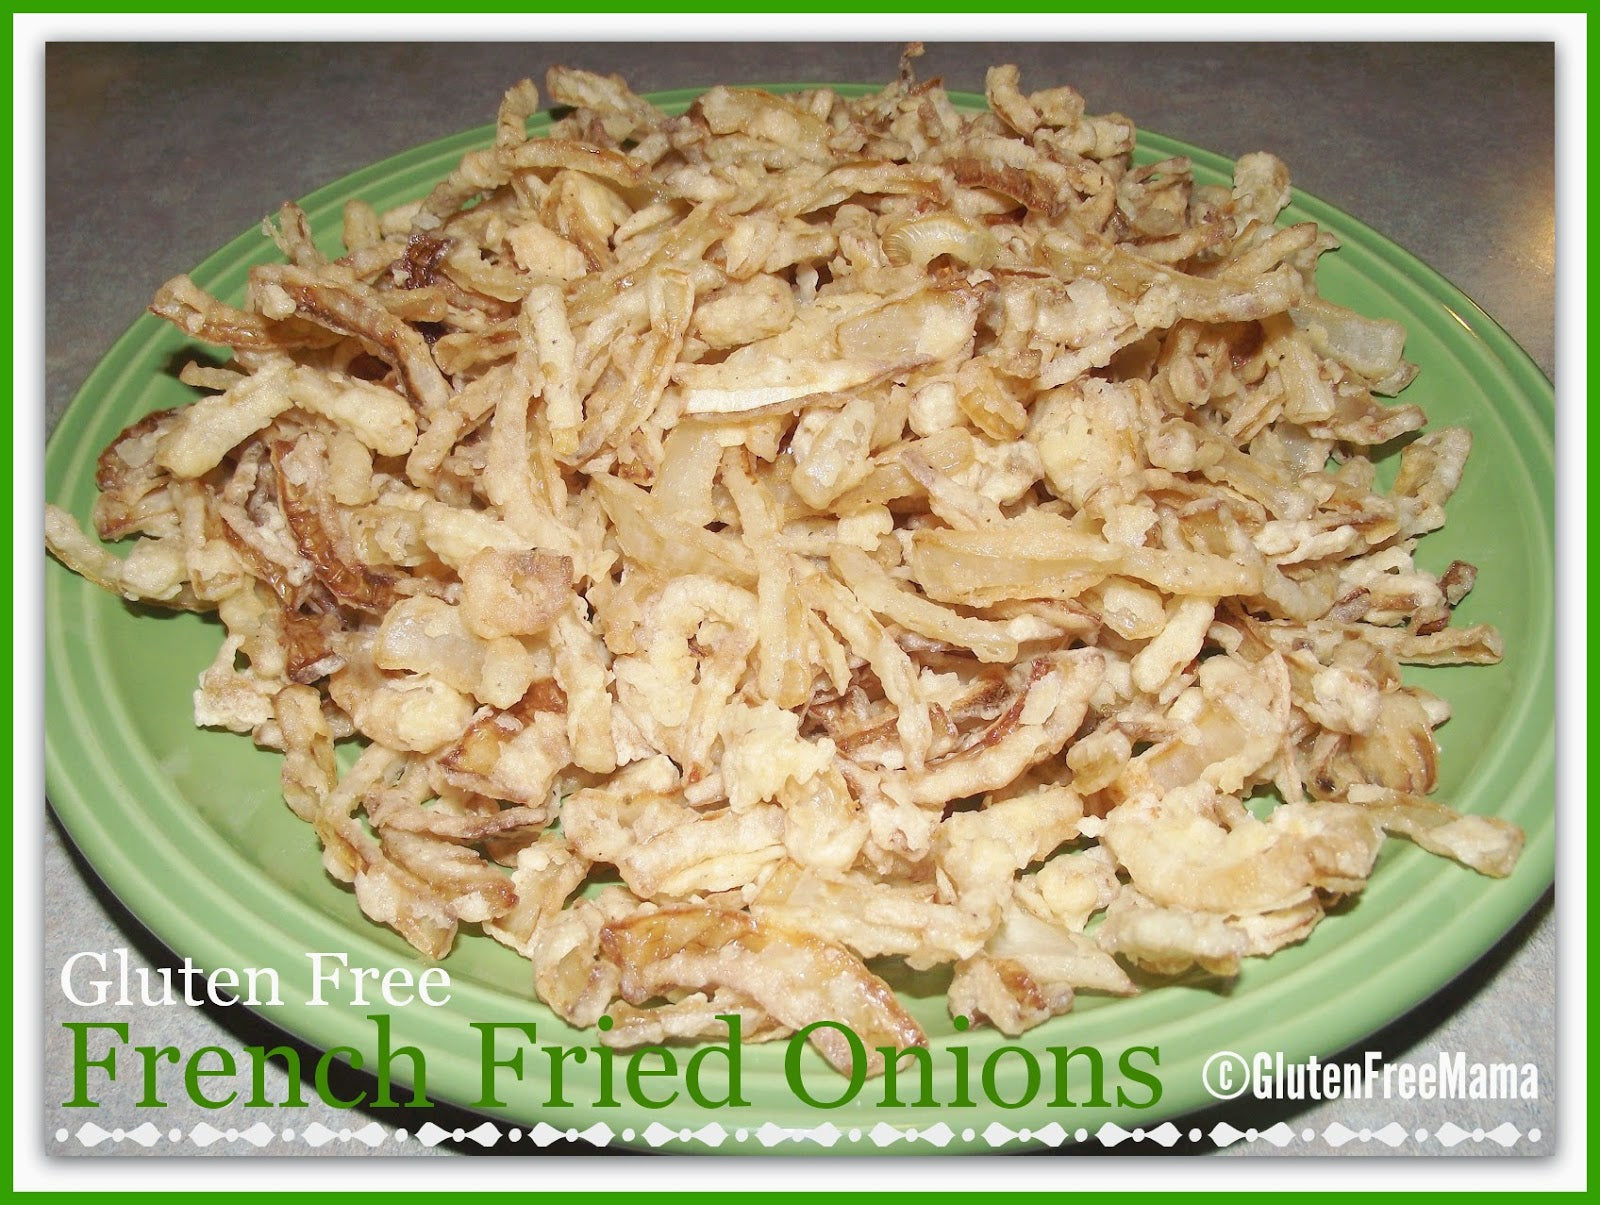 Mama's Gluten Free French Fried Onions